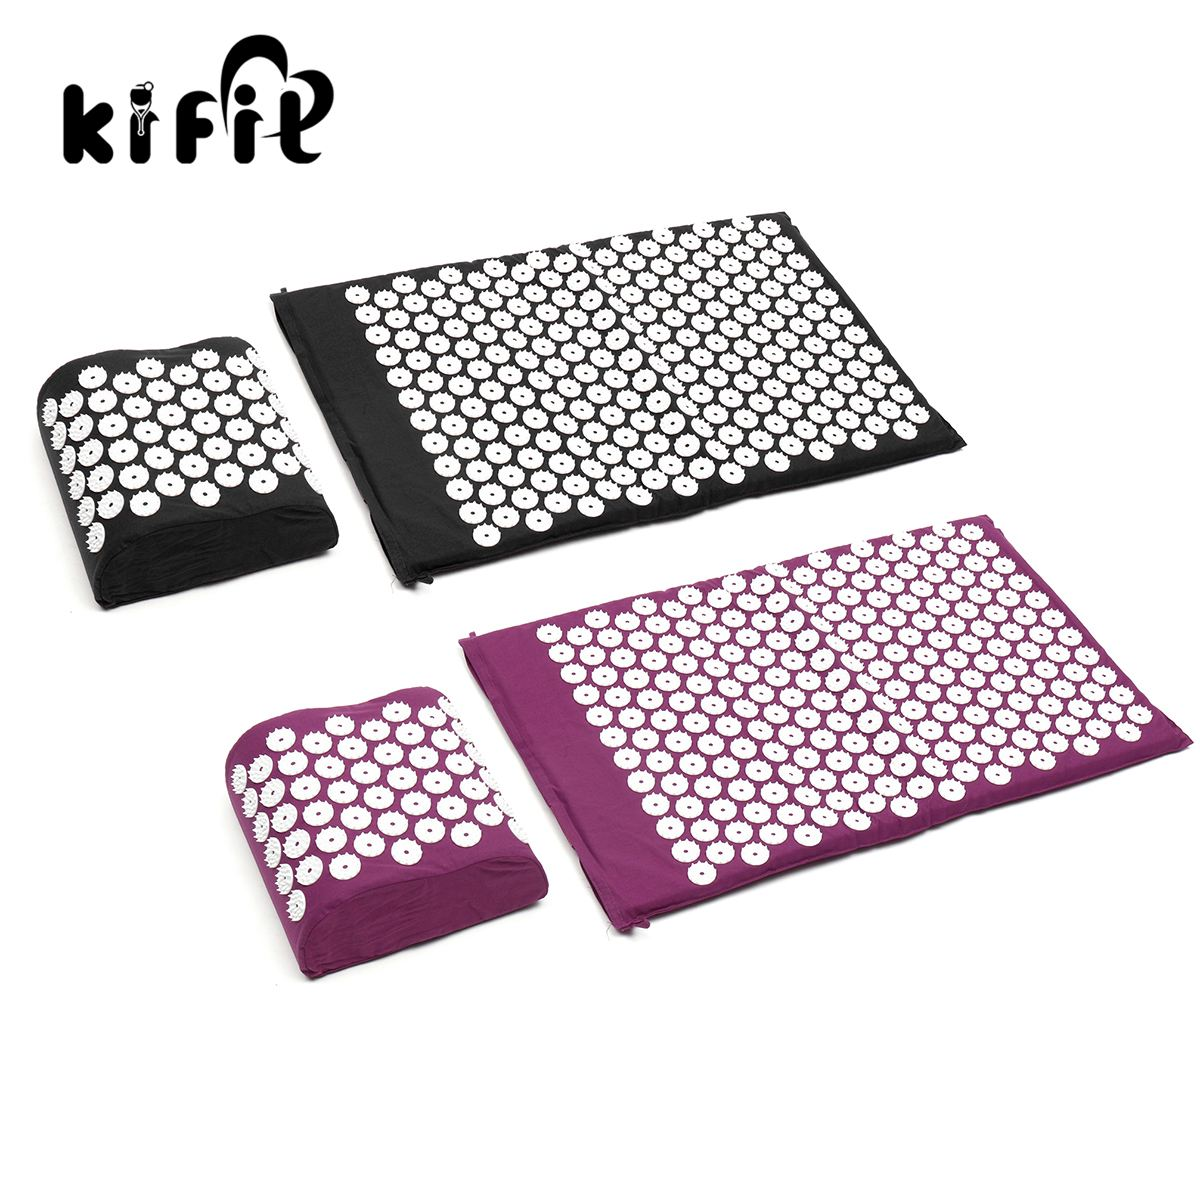 KIFIT Comfortable Acupressure Massage Pillow Mat Yoga Bed Pilates Nail Needle Pressure Shakti Neck Health Beauty Care Tool zhongyantaihe disposable needle beauty massage needle dermal needles with 12 replacement head seven star needle